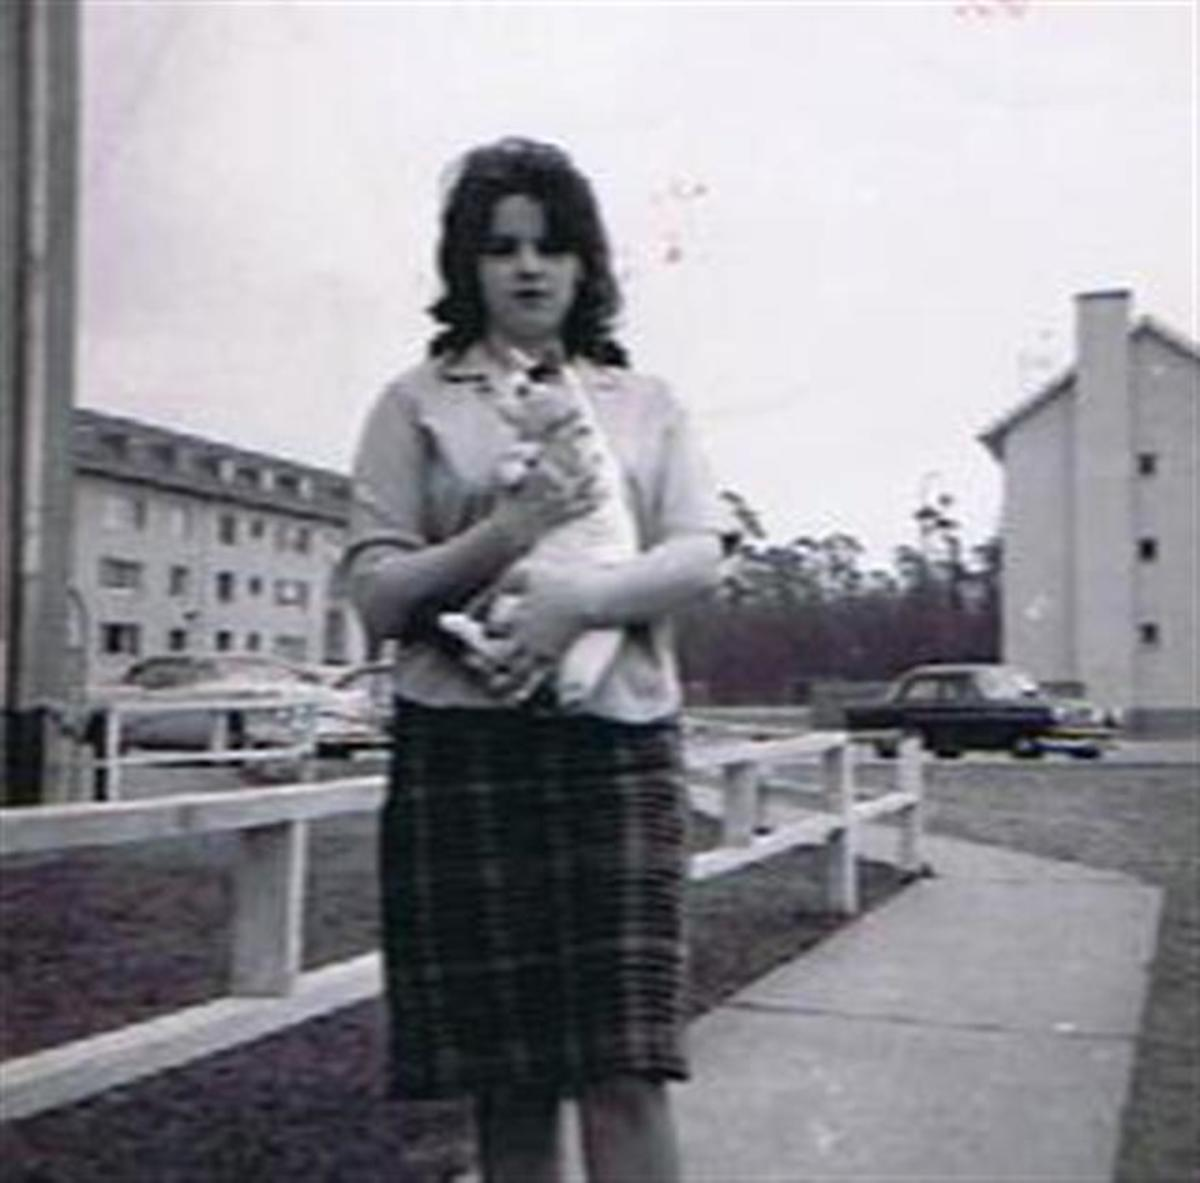 Kathy Schoen with our cat.